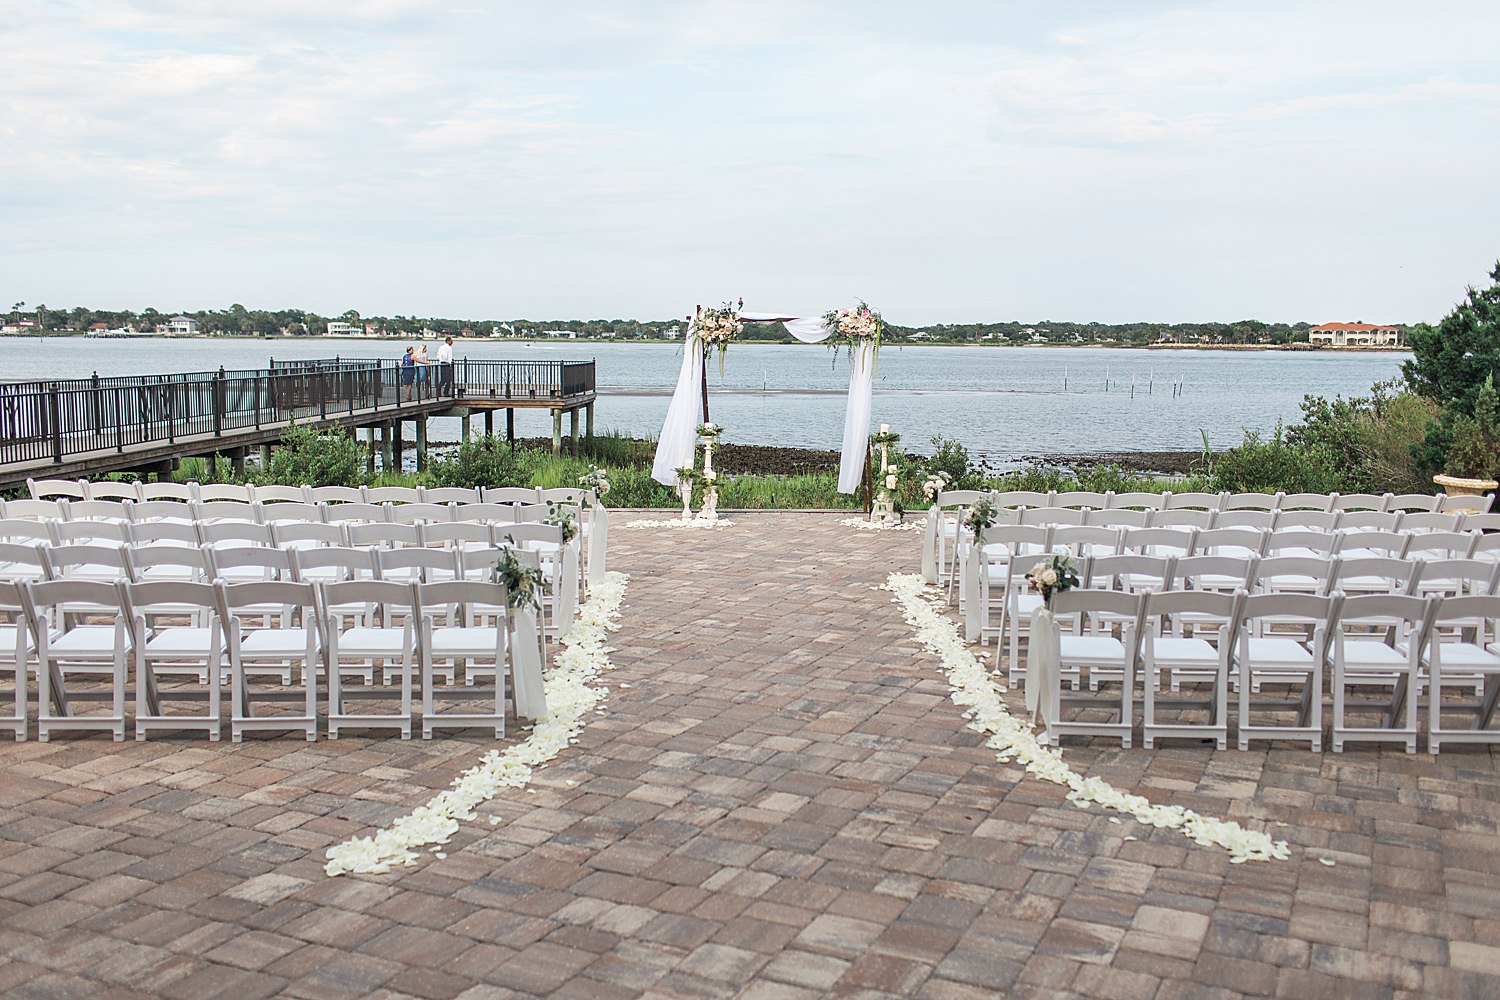 The River House Wedding, River House Wedding, The River House, Jacksonville wedding, Jacksonville wedding photographer, St, Augustine Wedding, St. Augustine Wedding Photographer, St. Augustine Wedding Venue, Florida Wedding, Florida Wedding Photographer, North Florida Wedding Photographer, Florida wedding ideas, Florida wedding inspiration, Florida wedding planning,